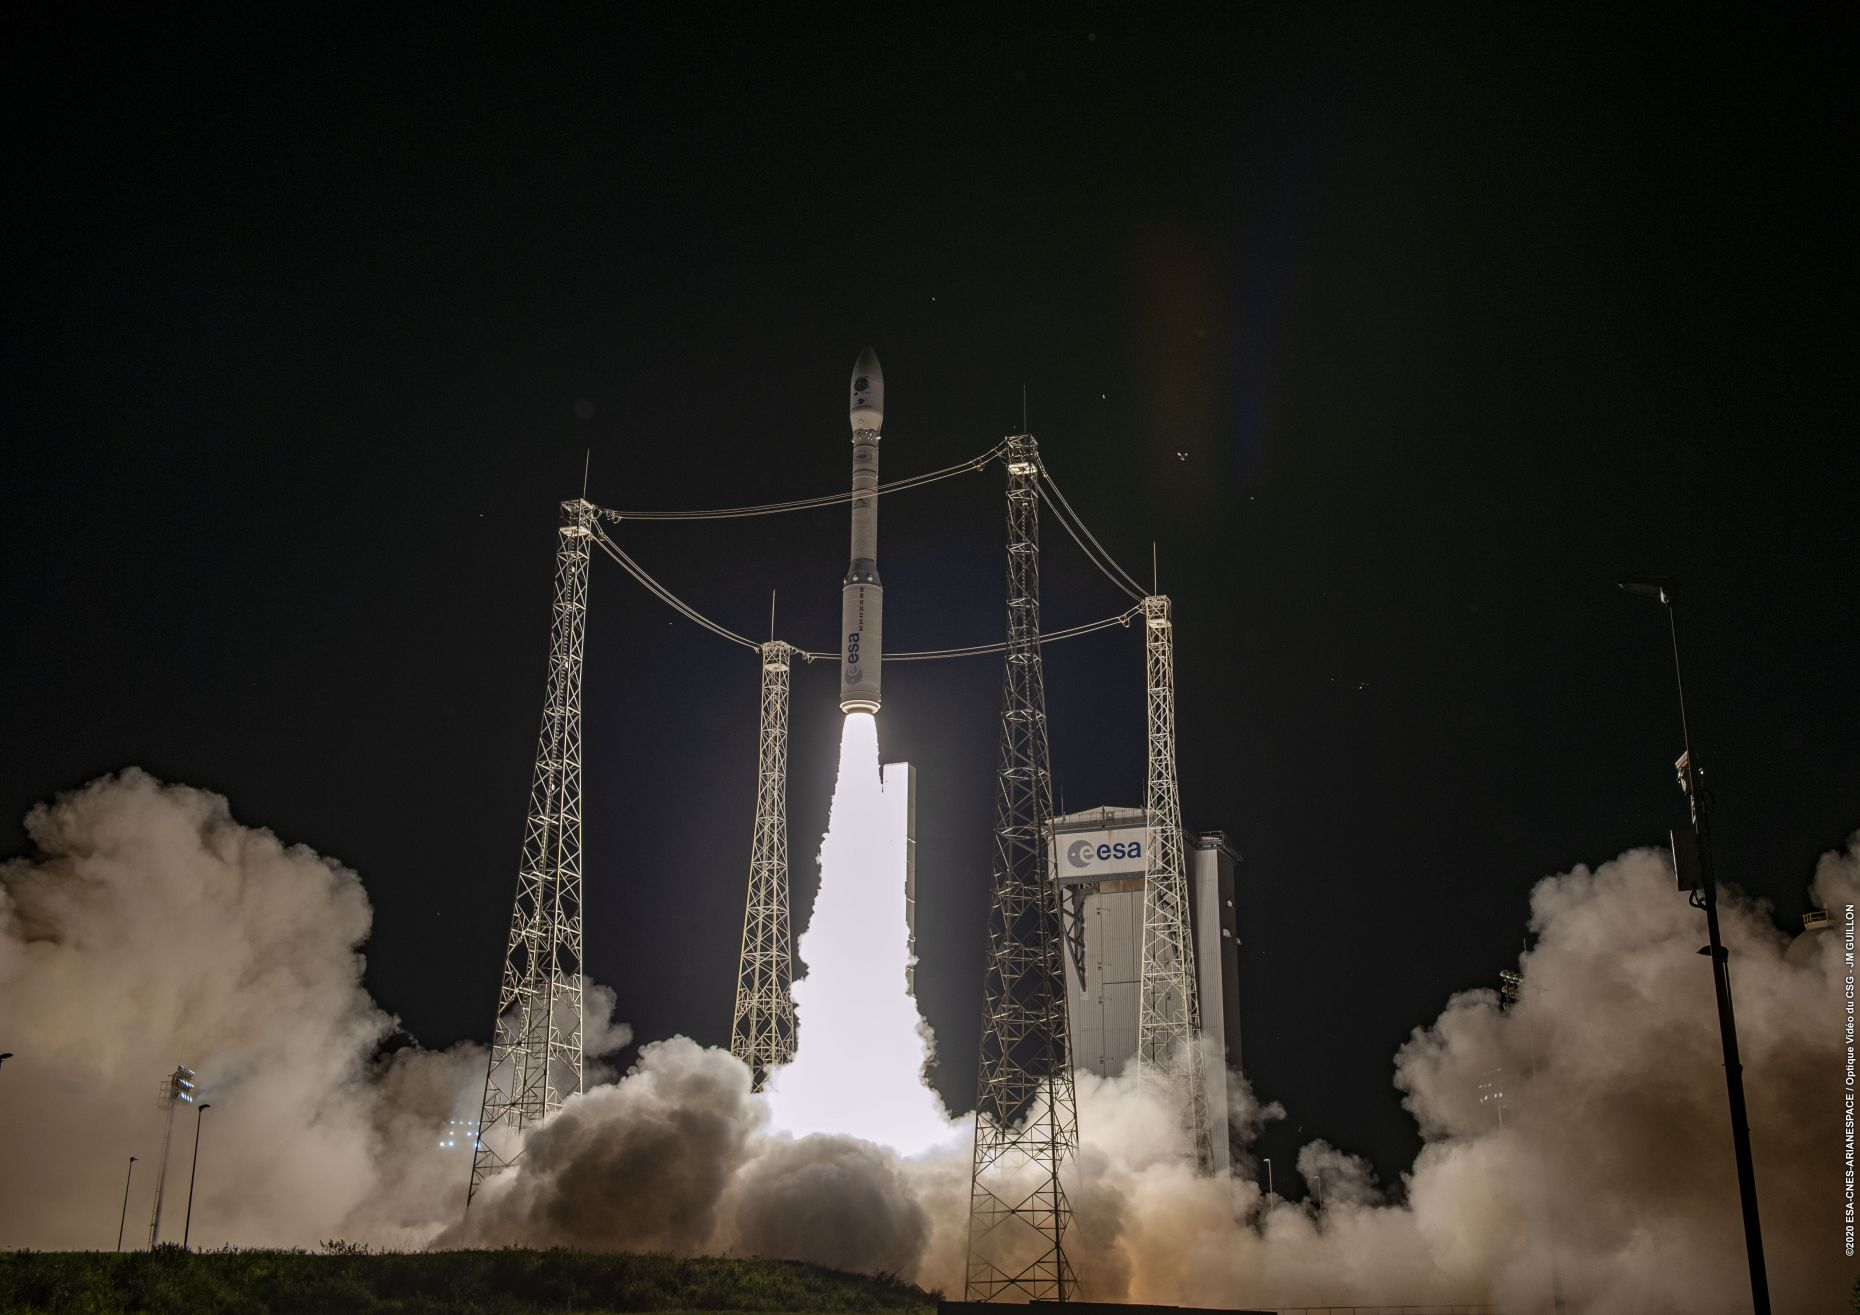 Esa rocket vega lifts off